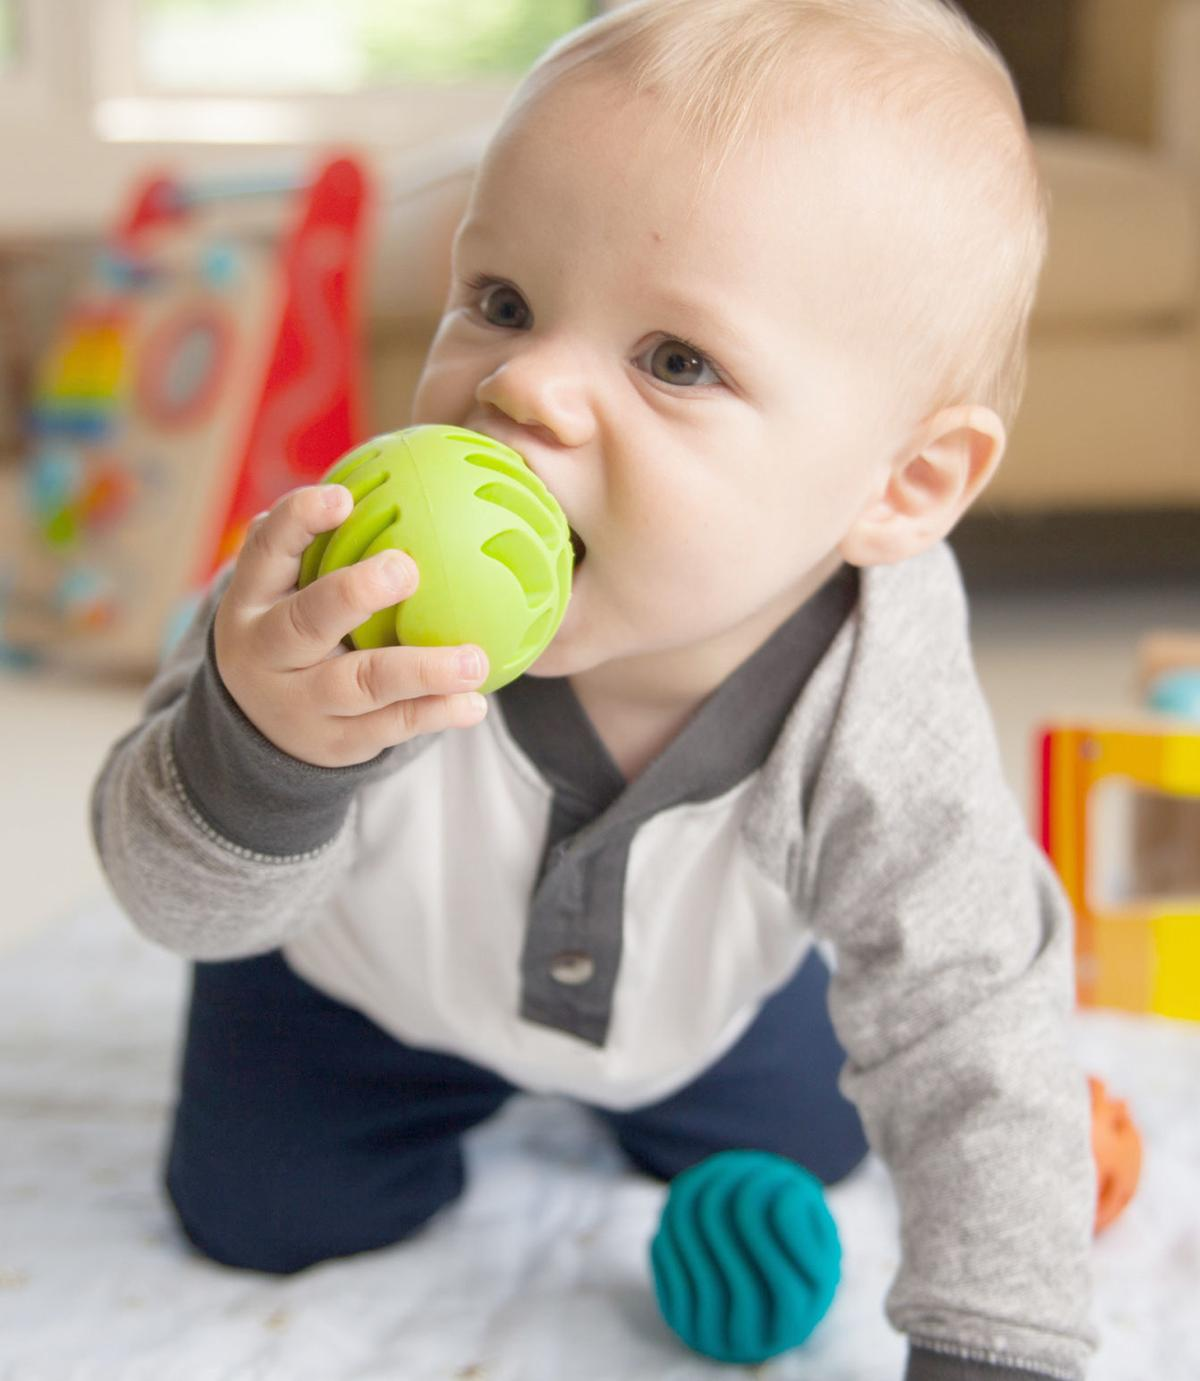 Crawling baby with ball